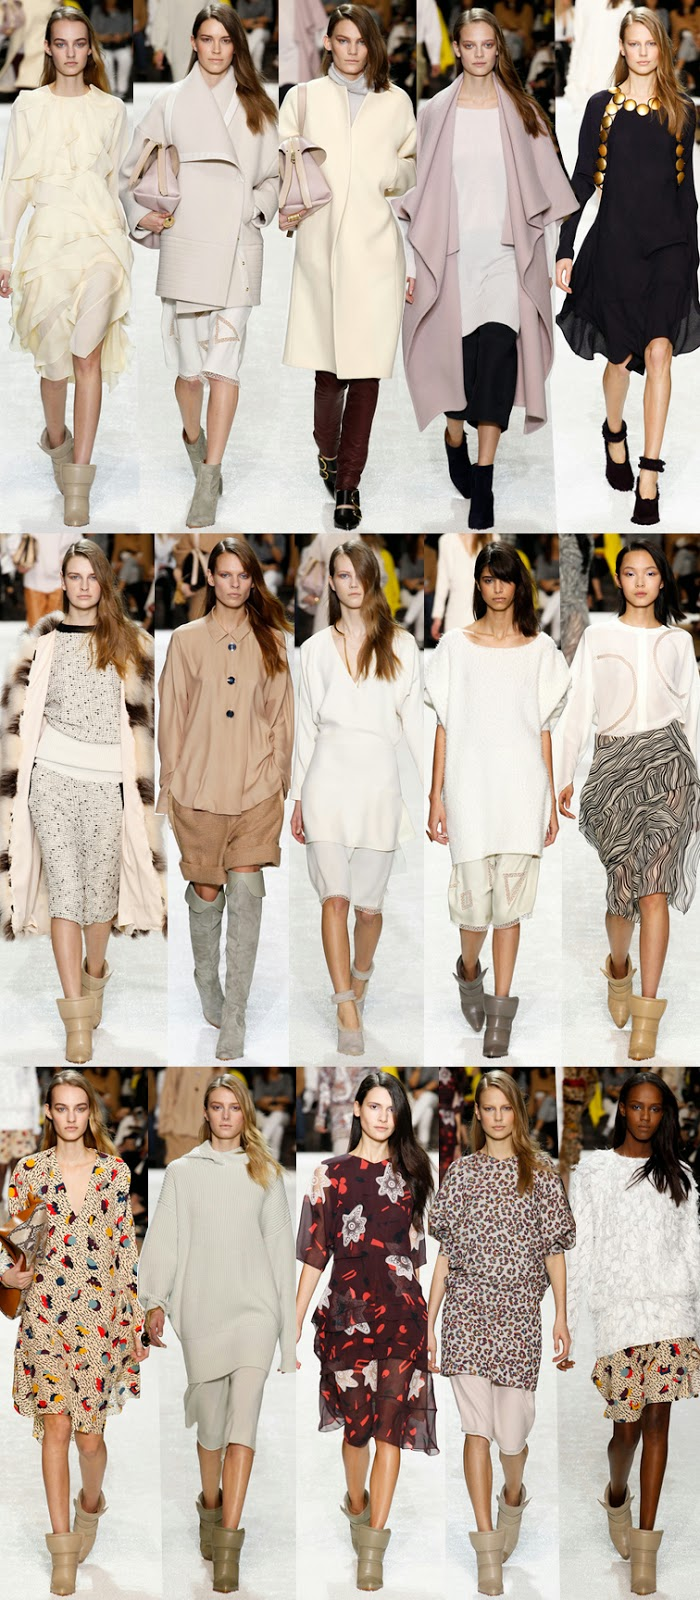 Chloe by Clare Waight Keller fall winter 2014 runway collection, PFW, FW14, AW14, Paris fashion week